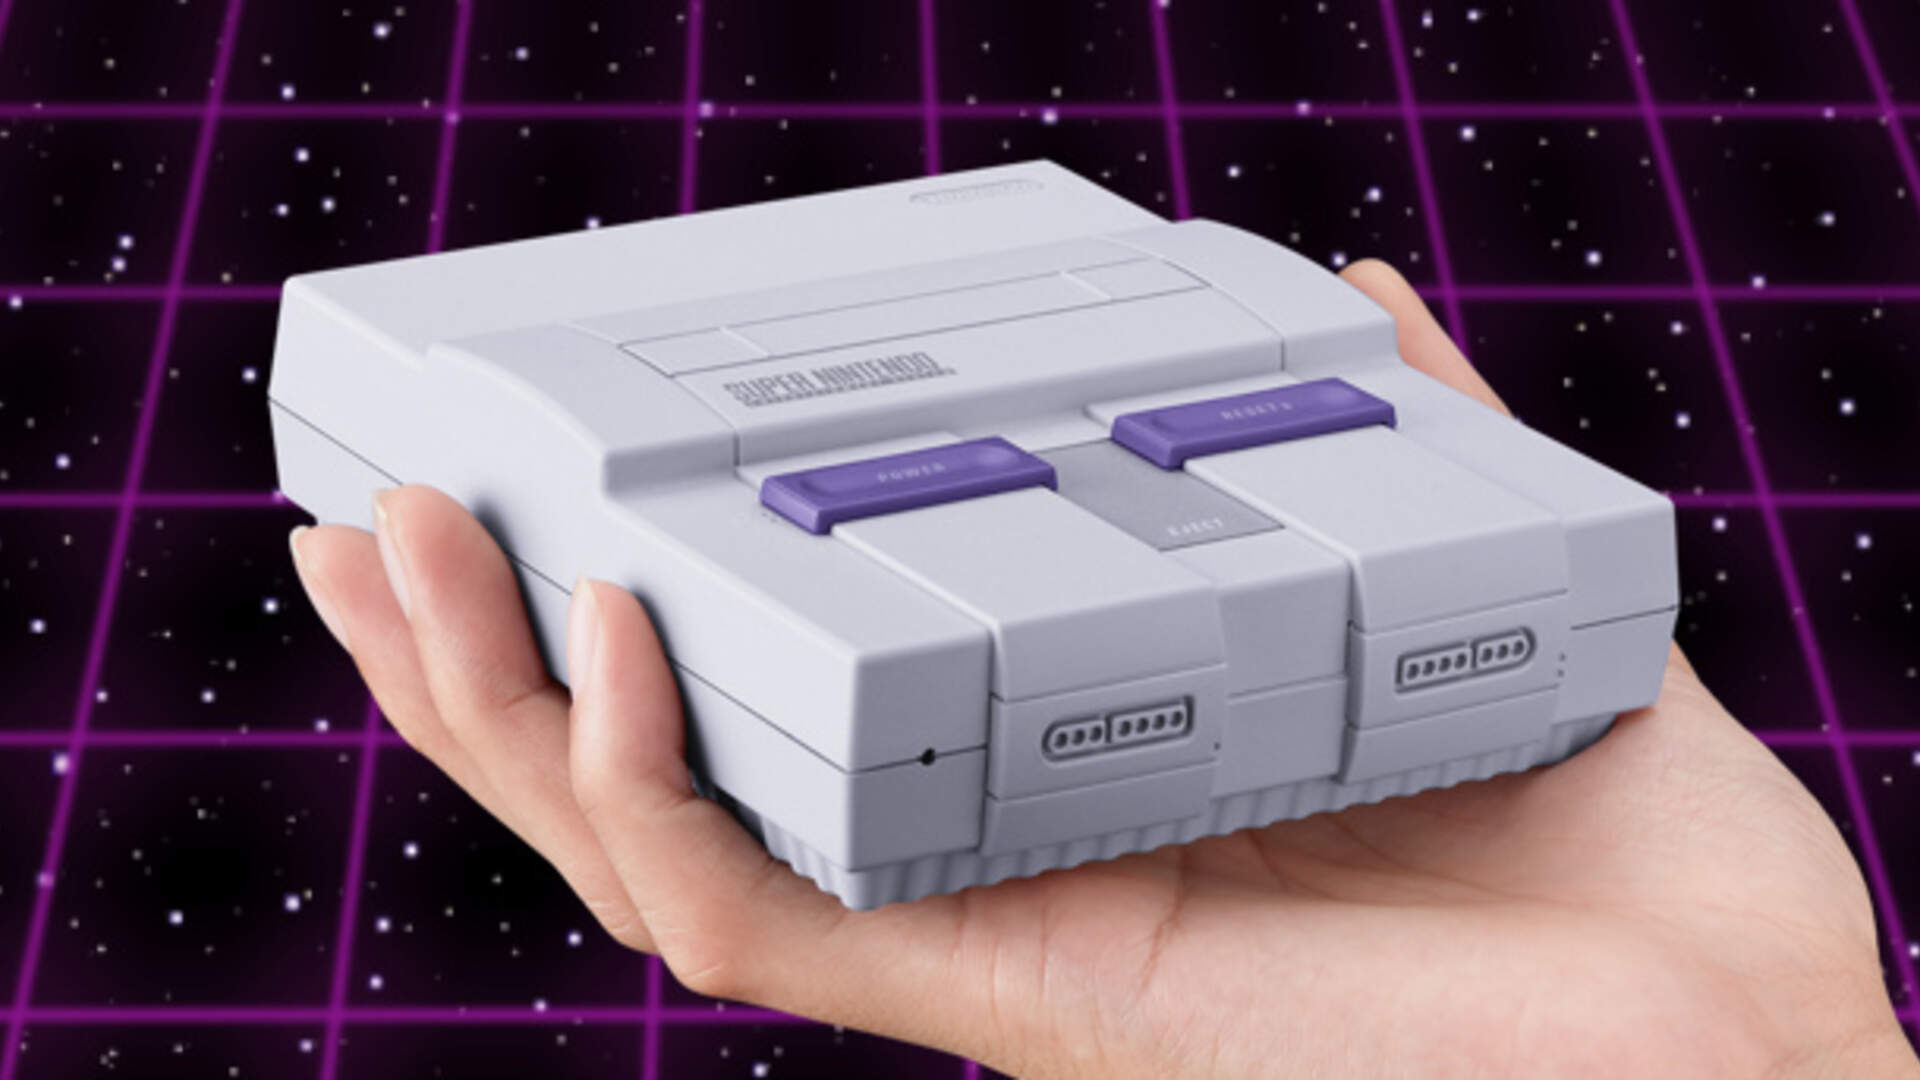 Super NES Classic Goes Live on GameStop, Site Promptly Goes Down [Update: It's on Thinkgeek Now]